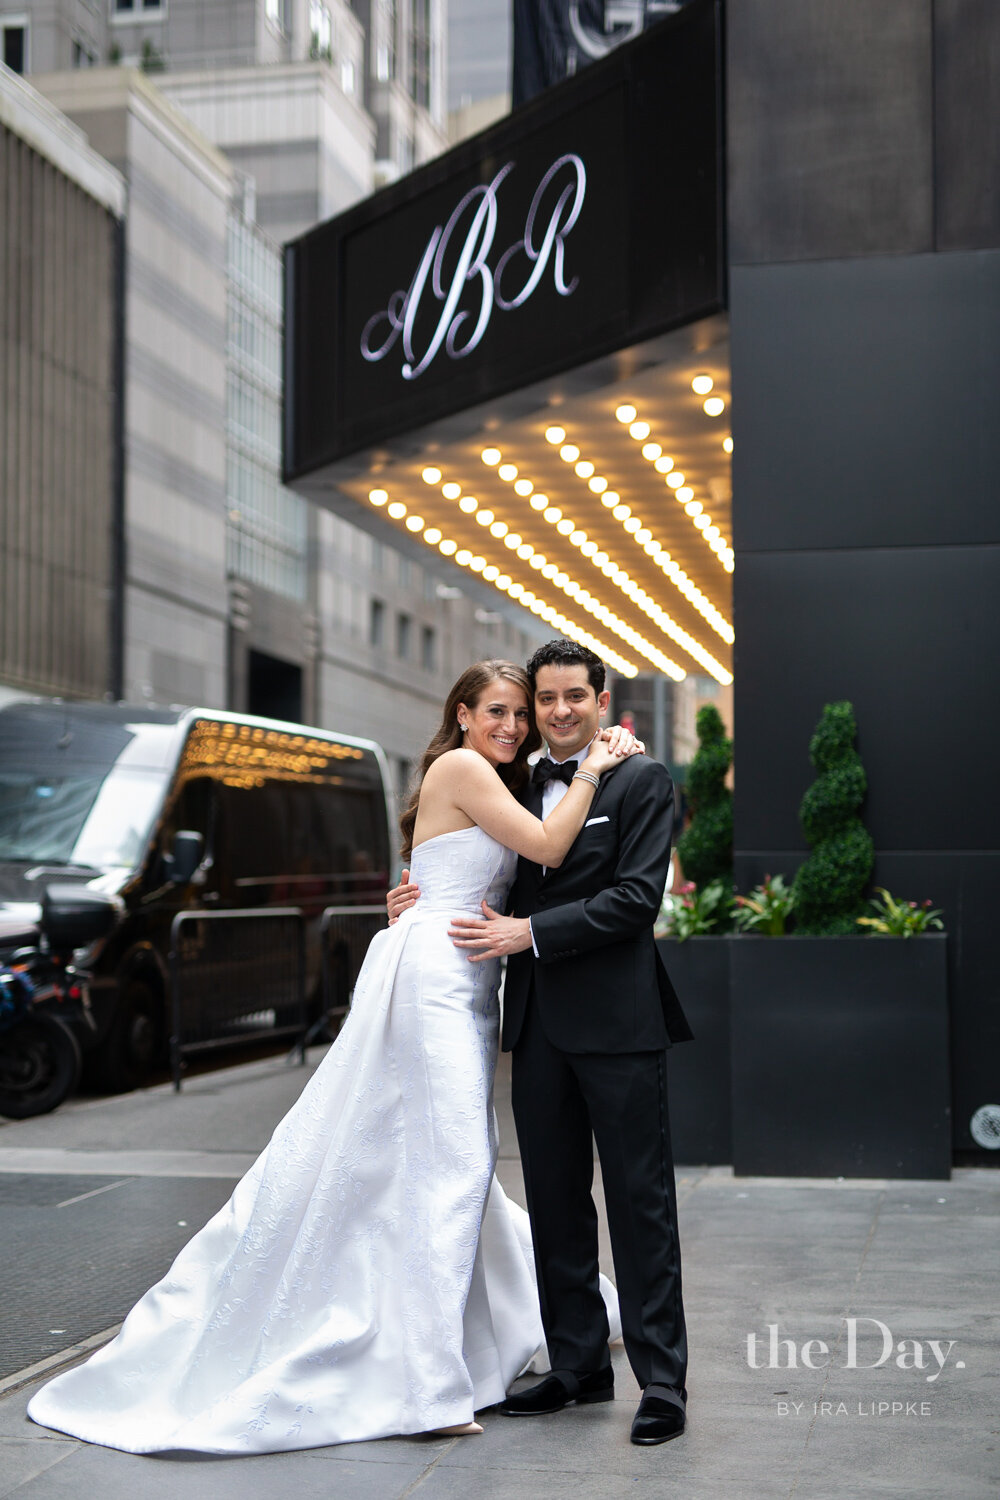 As our iconic marquee announces your wedding as the main event… -